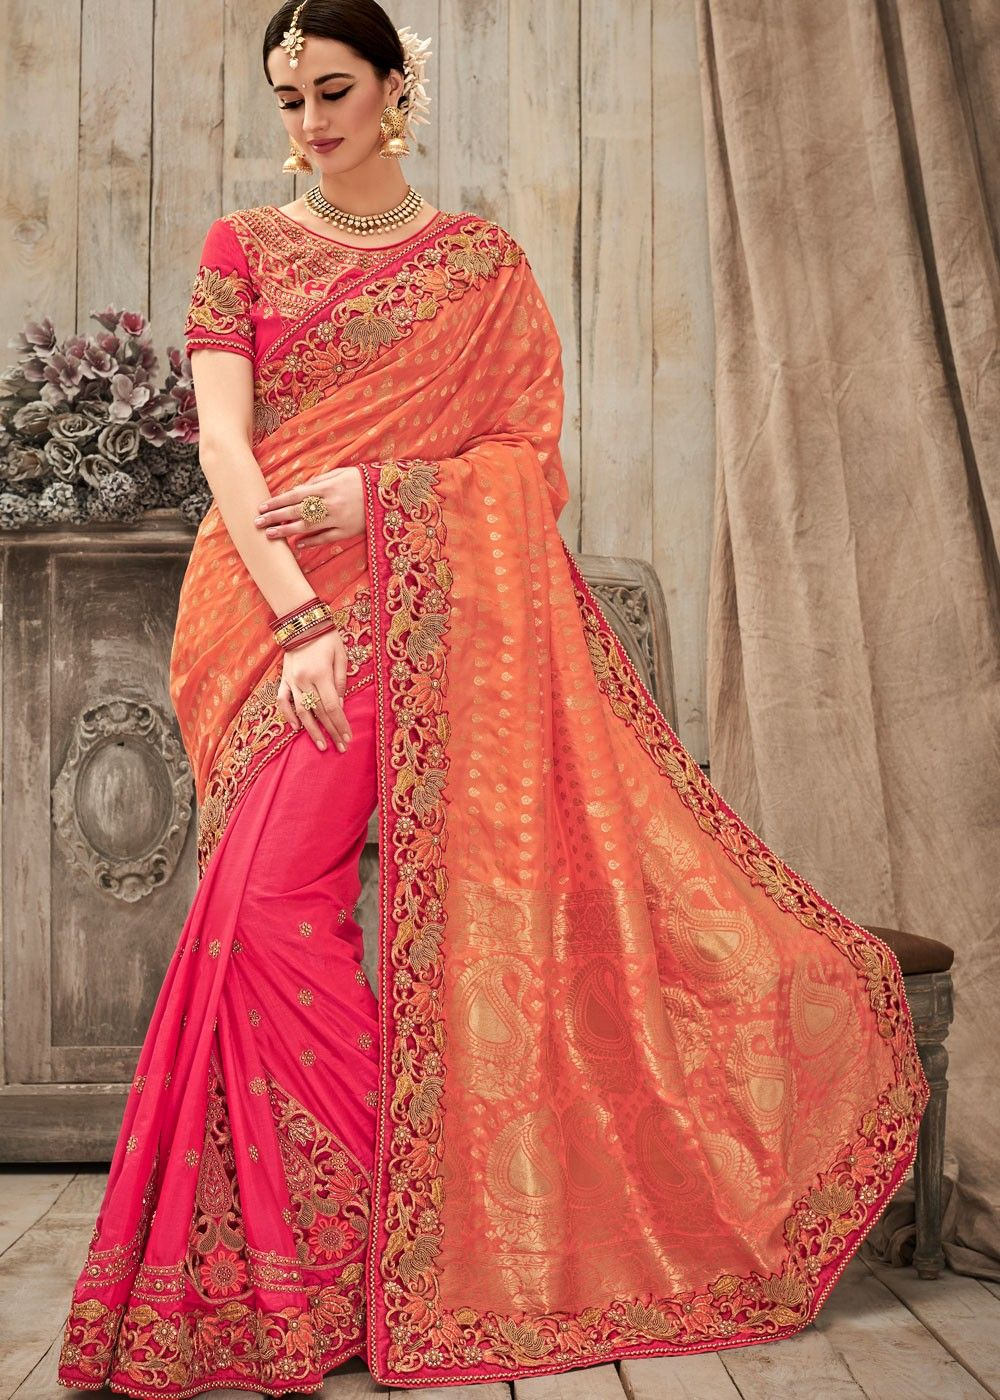 5325abd4a60486 Pink and orange half n half silk saree embellished with zari, beads work  and lace. Also comes with a red art silk blouse in similar work.